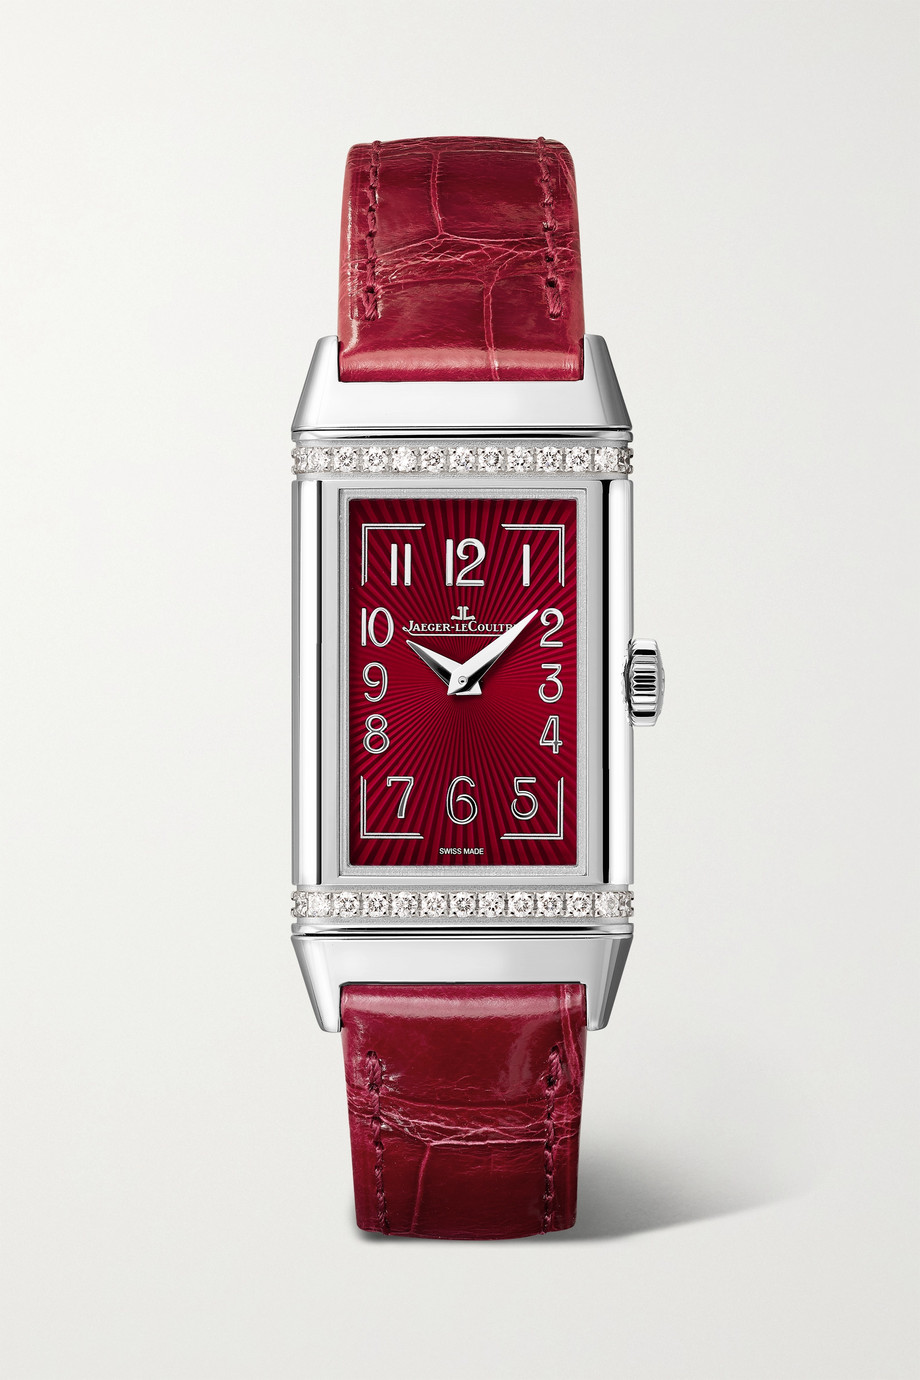 Jaeger-LeCoultre Reverso One 20 毫米精钢钻石腕表(短吻鳄鱼皮表带)